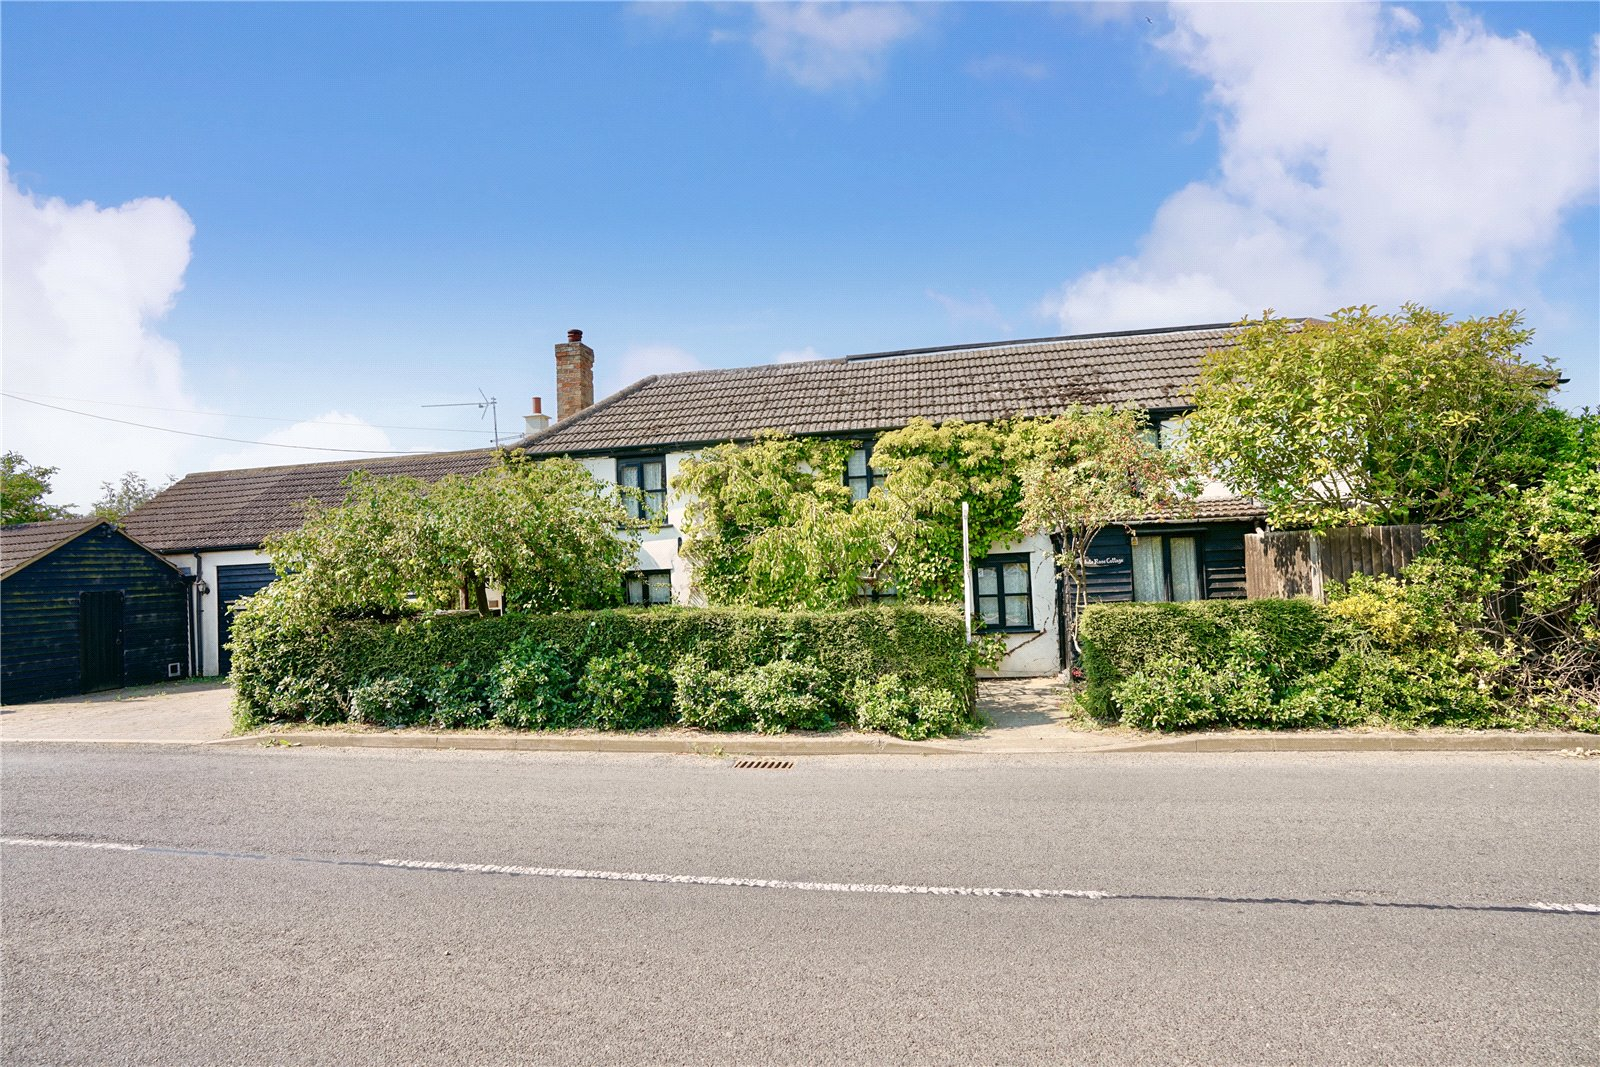 5 bed house for sale in Colmworth Road, Little Staughton  - Property Image 20